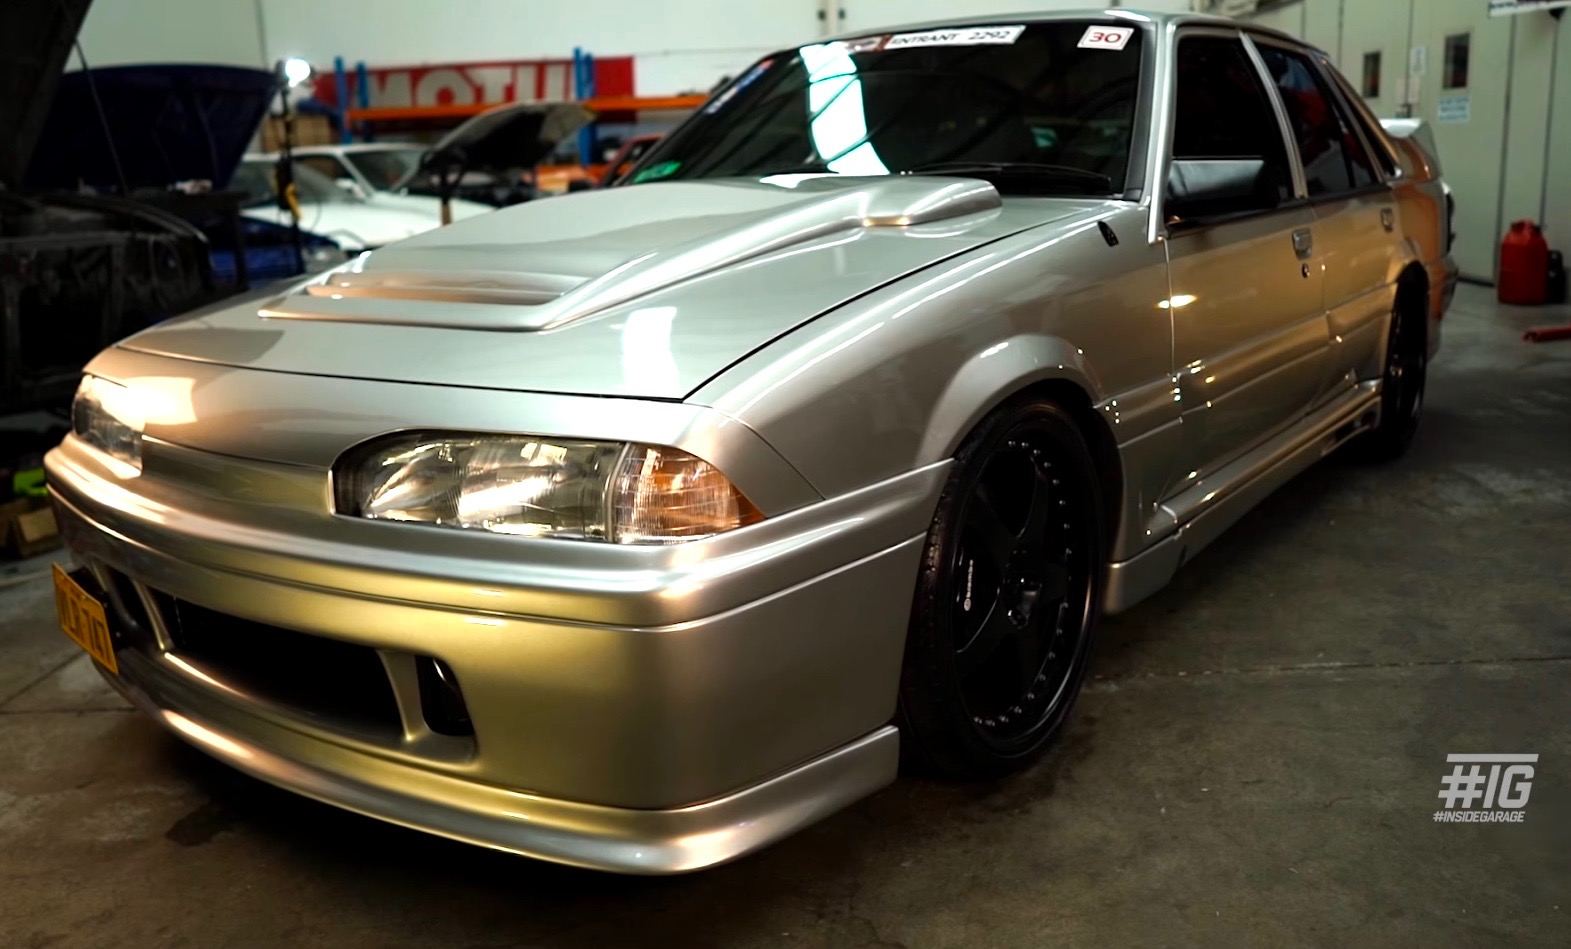 Holden VL Commodore gets Nissan RB26 GT-R conversion, with AWD